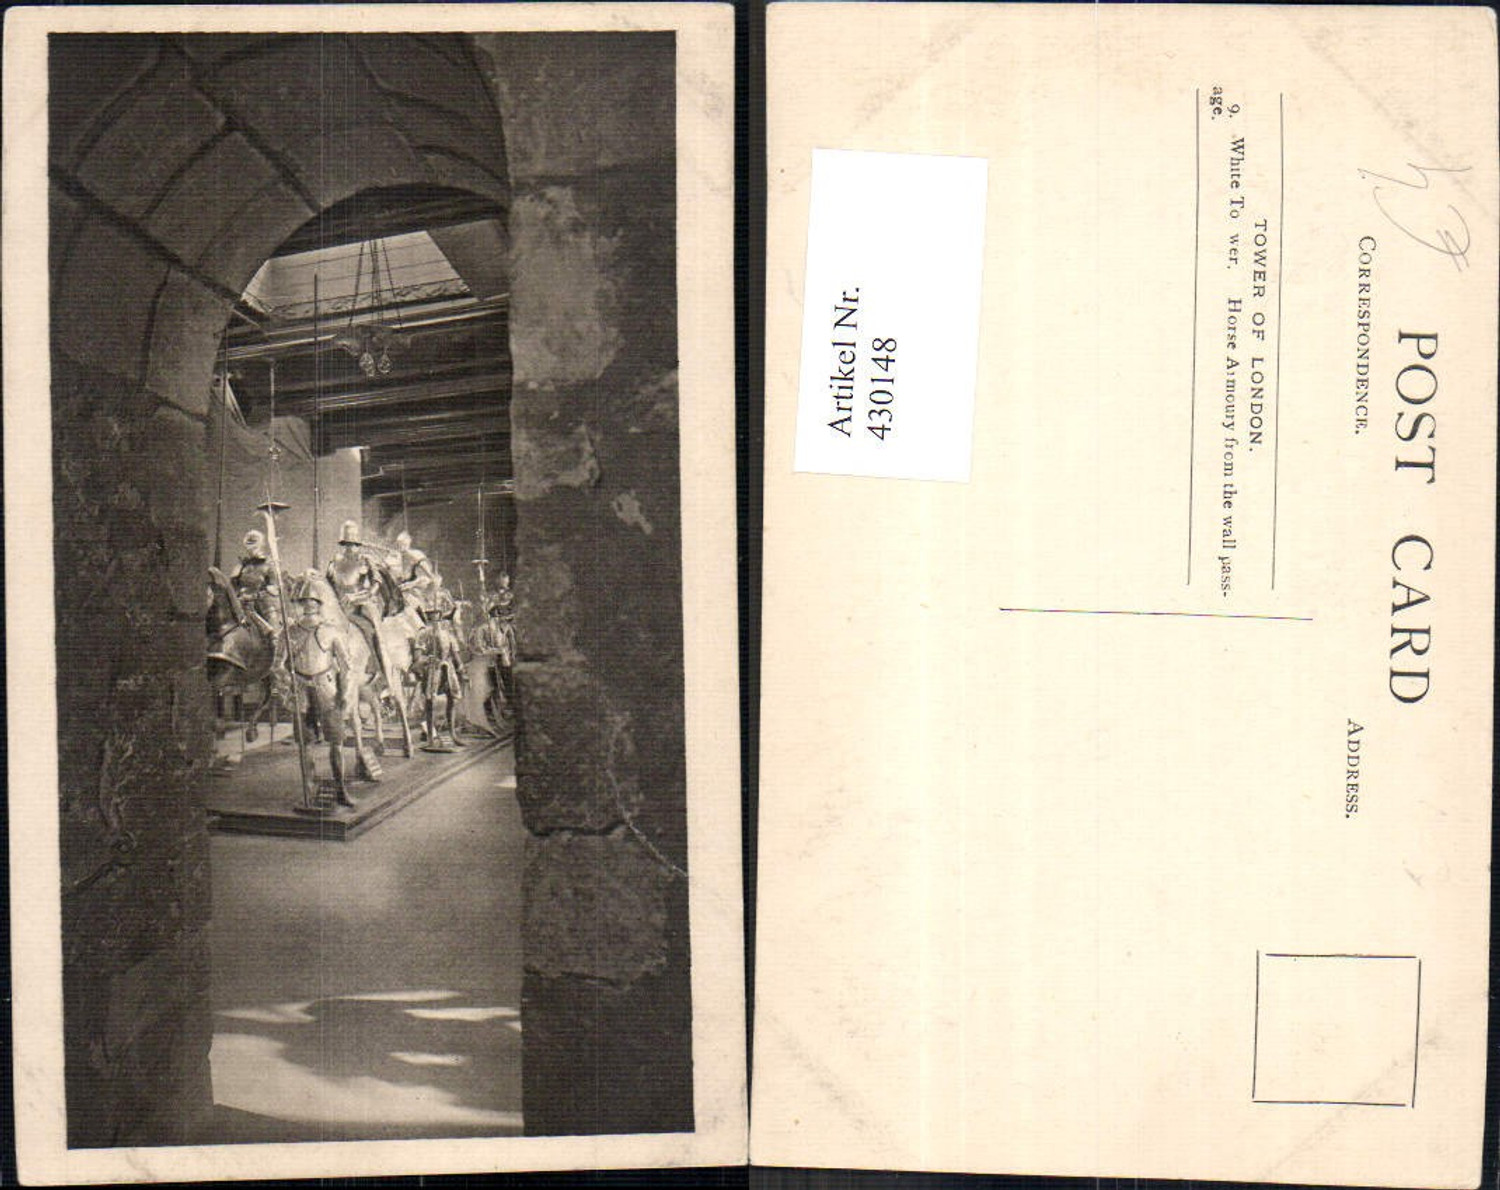 430148,Mittelalter Tower of London White Tower Horse Armoury from the wall passage günstig online kaufen